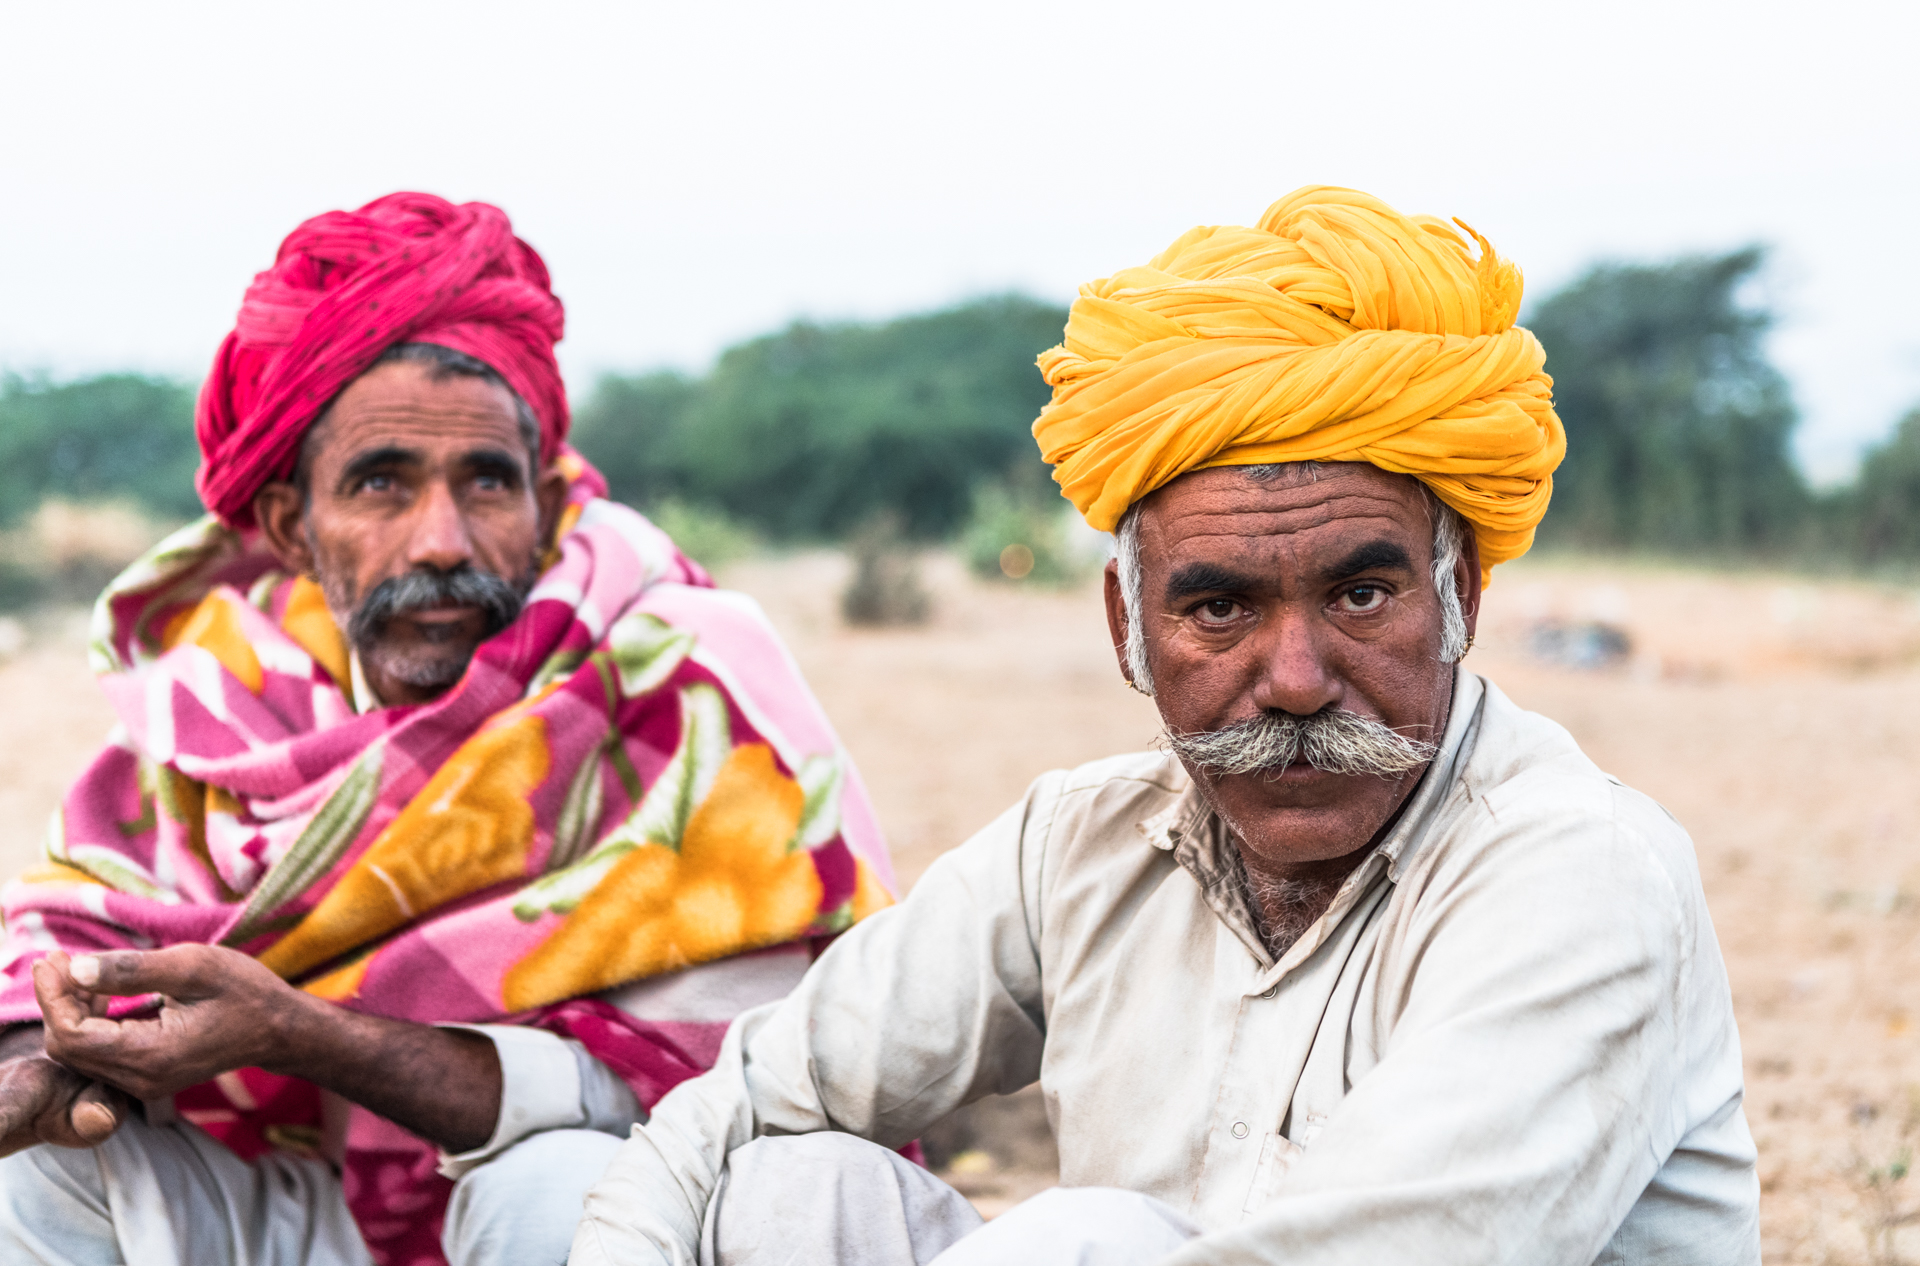 Portrait of two men in India